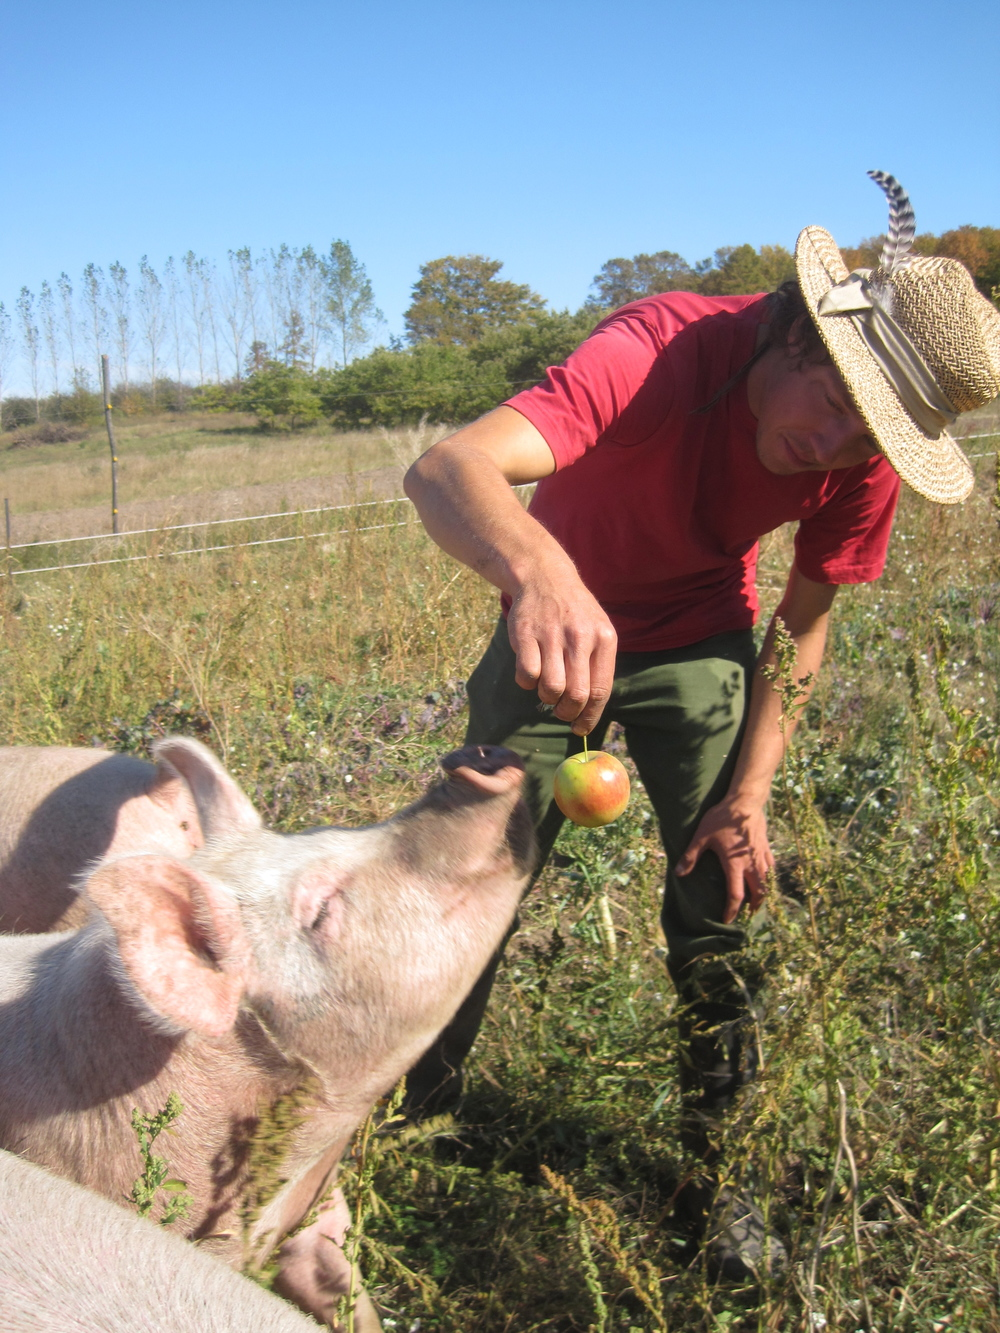 Apples: not just for pigs